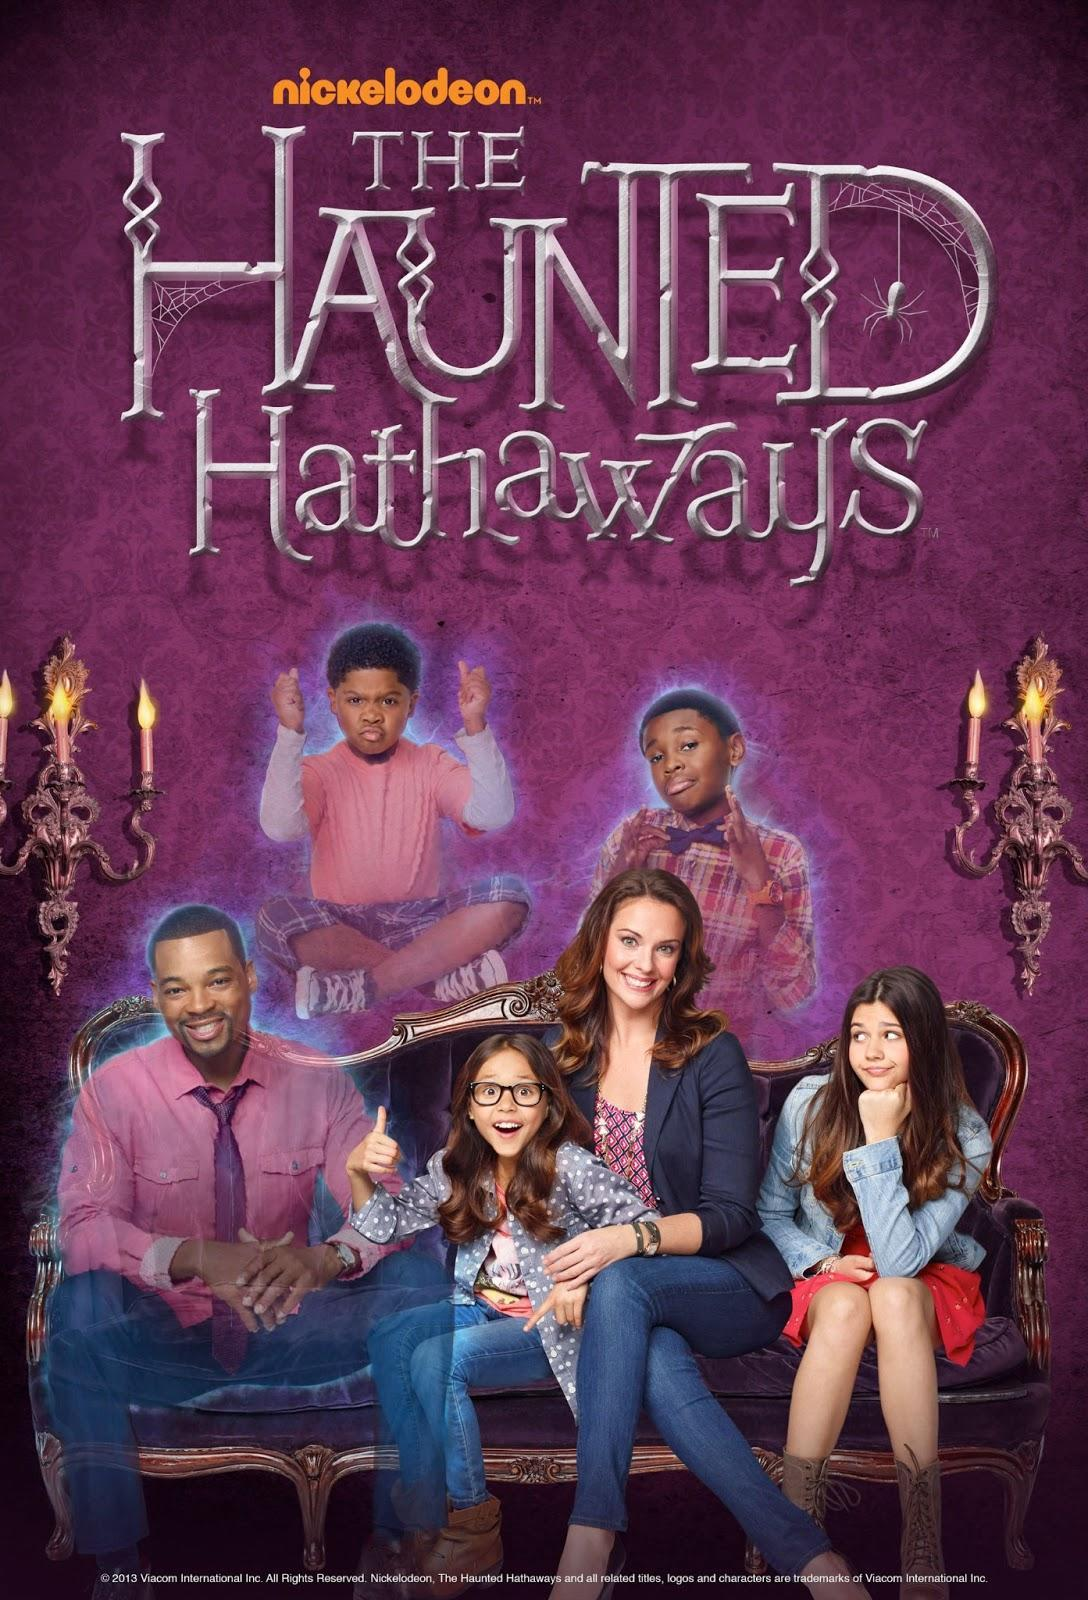 Which Character are you from The Haunted Hathaway